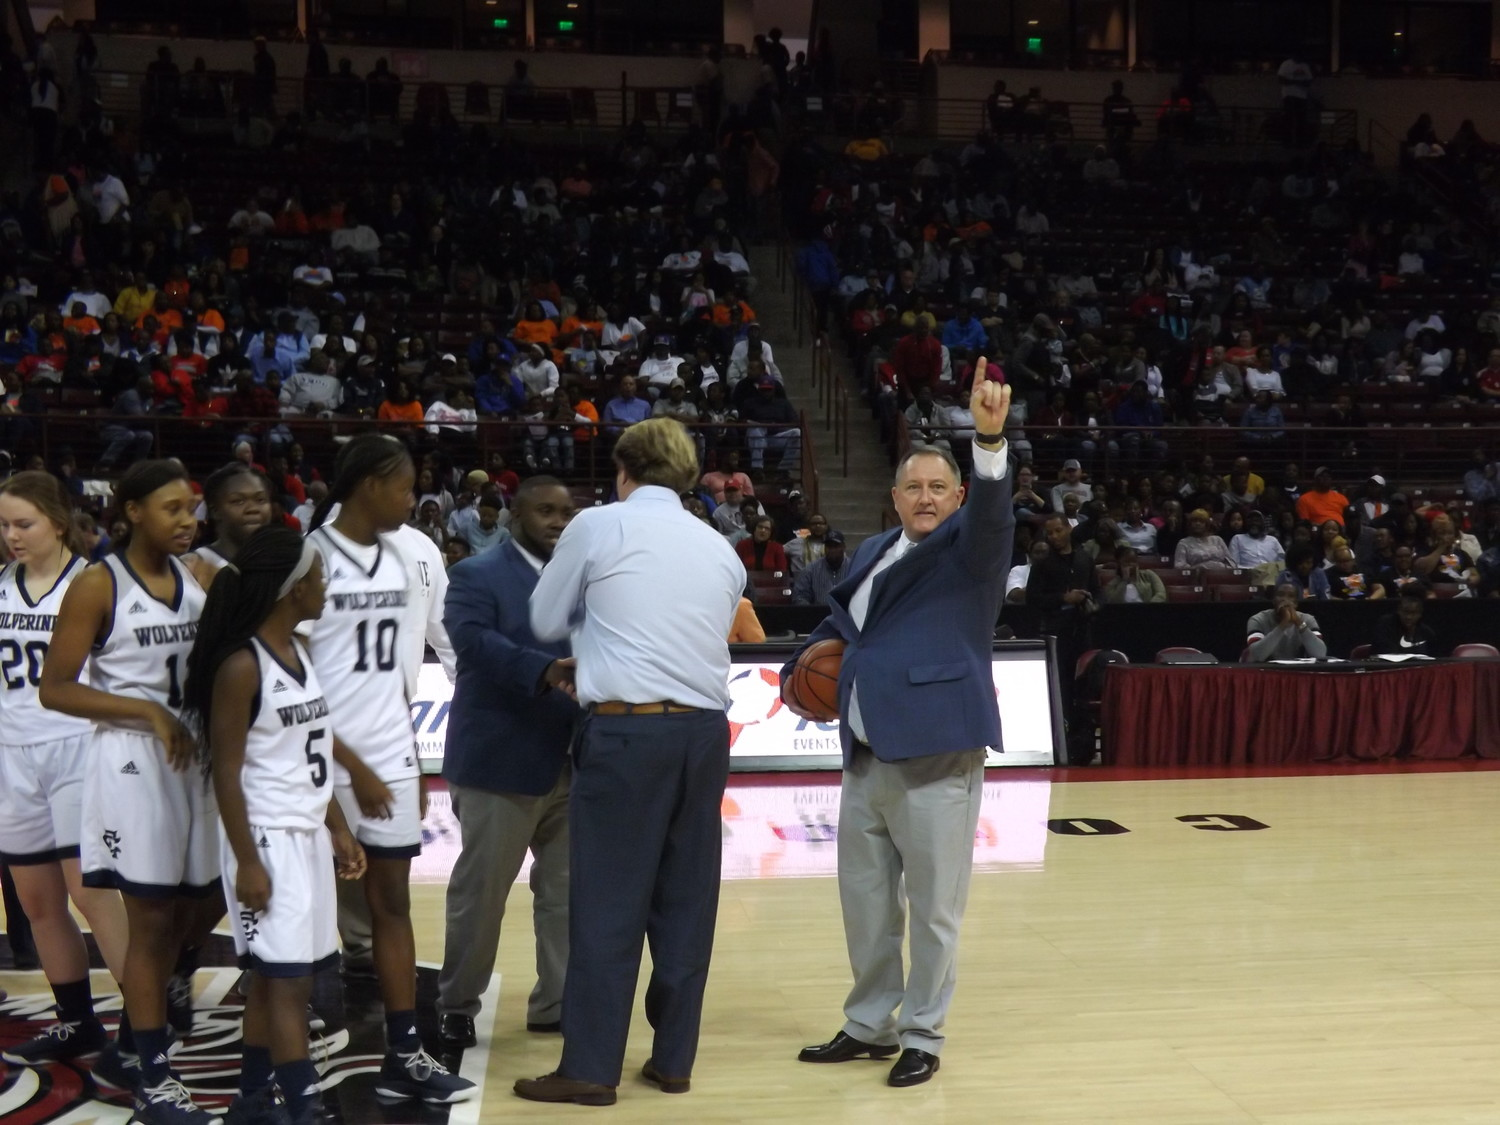 Coach Mike Lowder walked onto court and points to the fans from Turbeville, showing his appreciation.